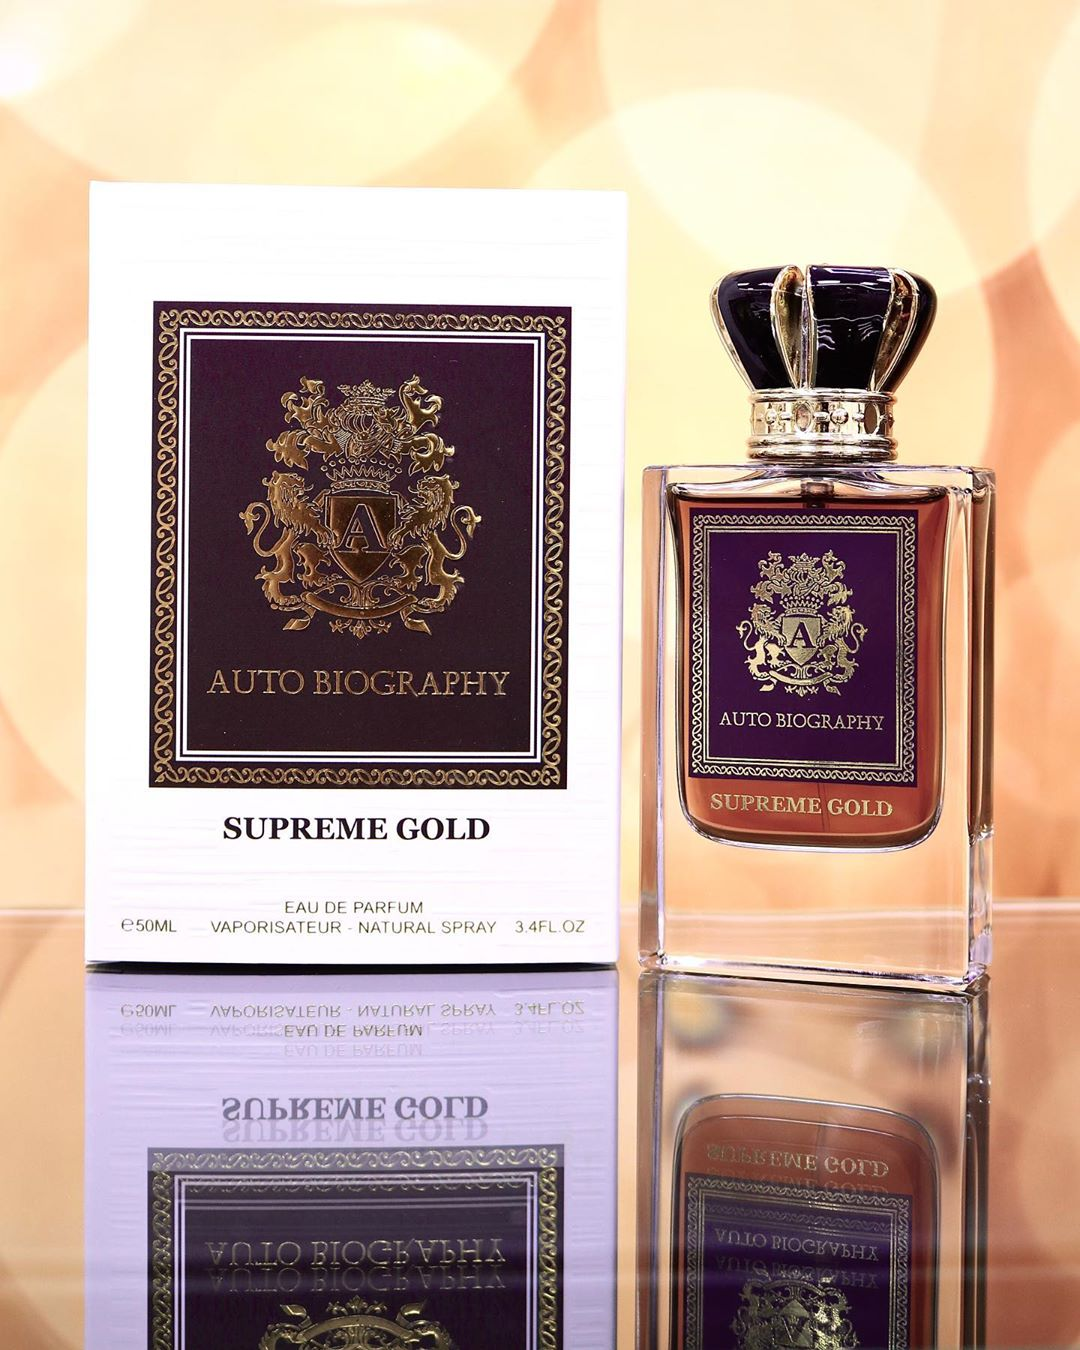 paris-corner-auto-biography-supreme-gold-for-men-perfume-for-men-50-ml-edp